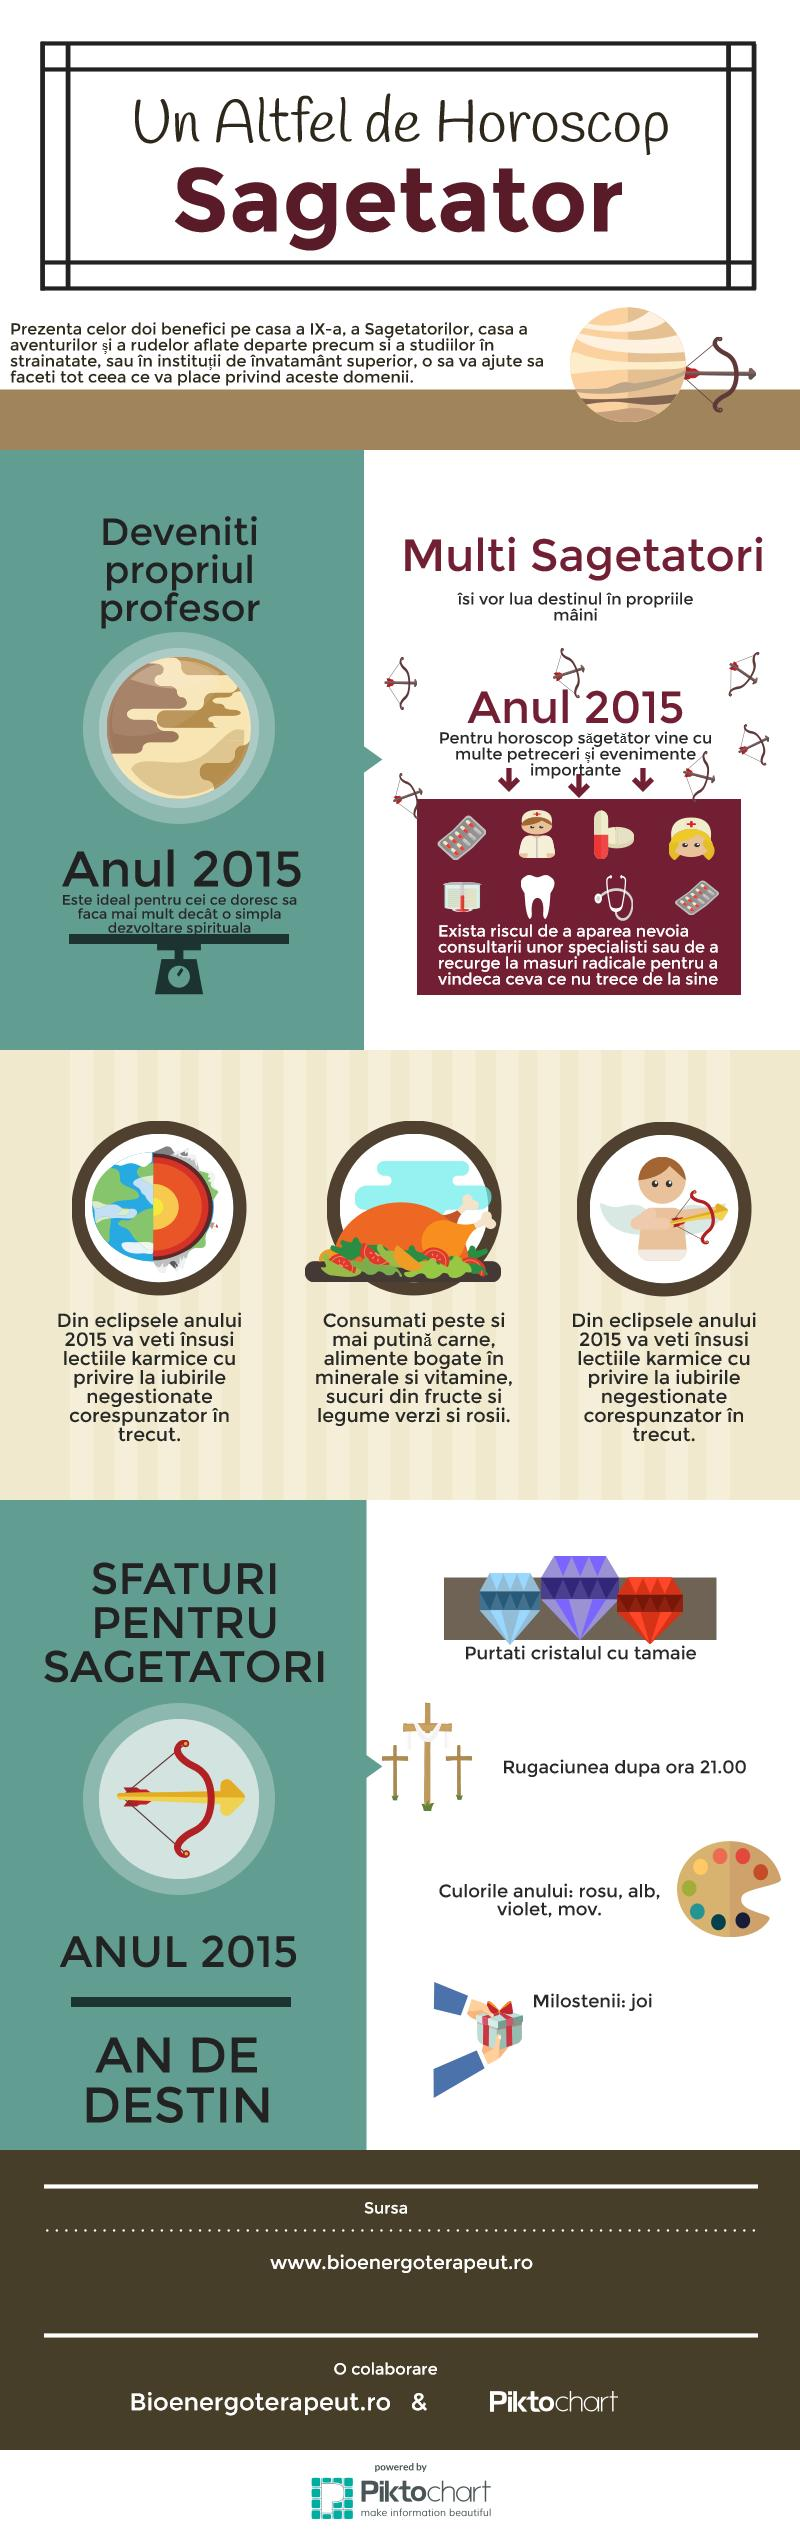 Untitled Infographic(4)